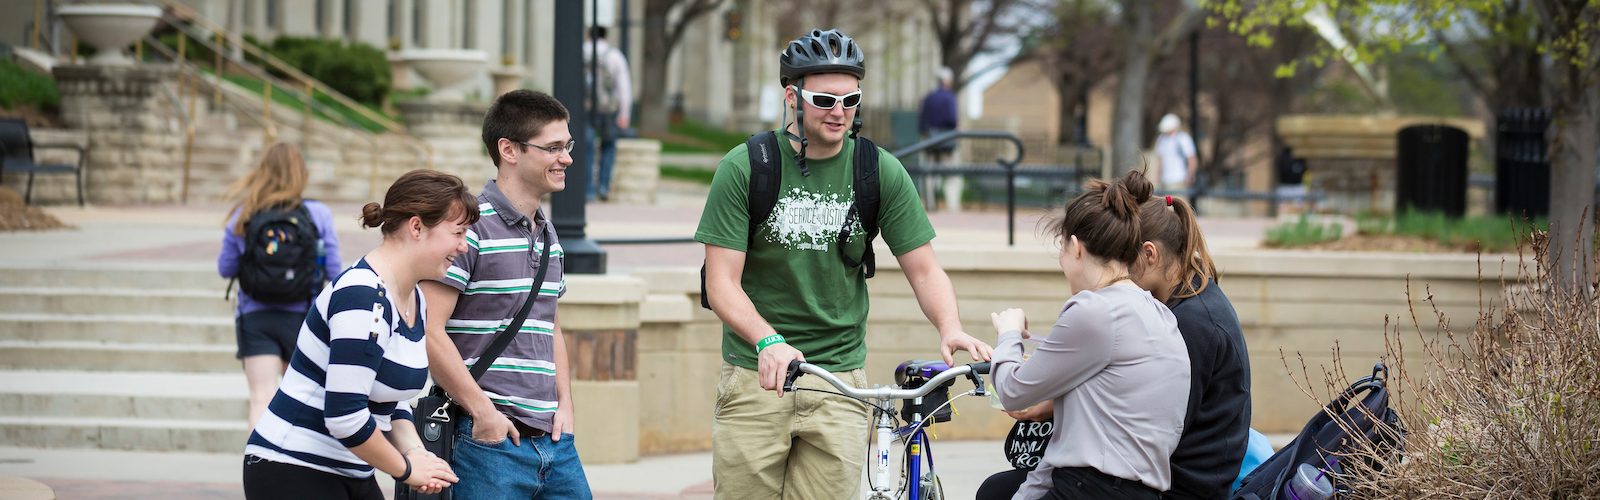 Commuter students on the mall